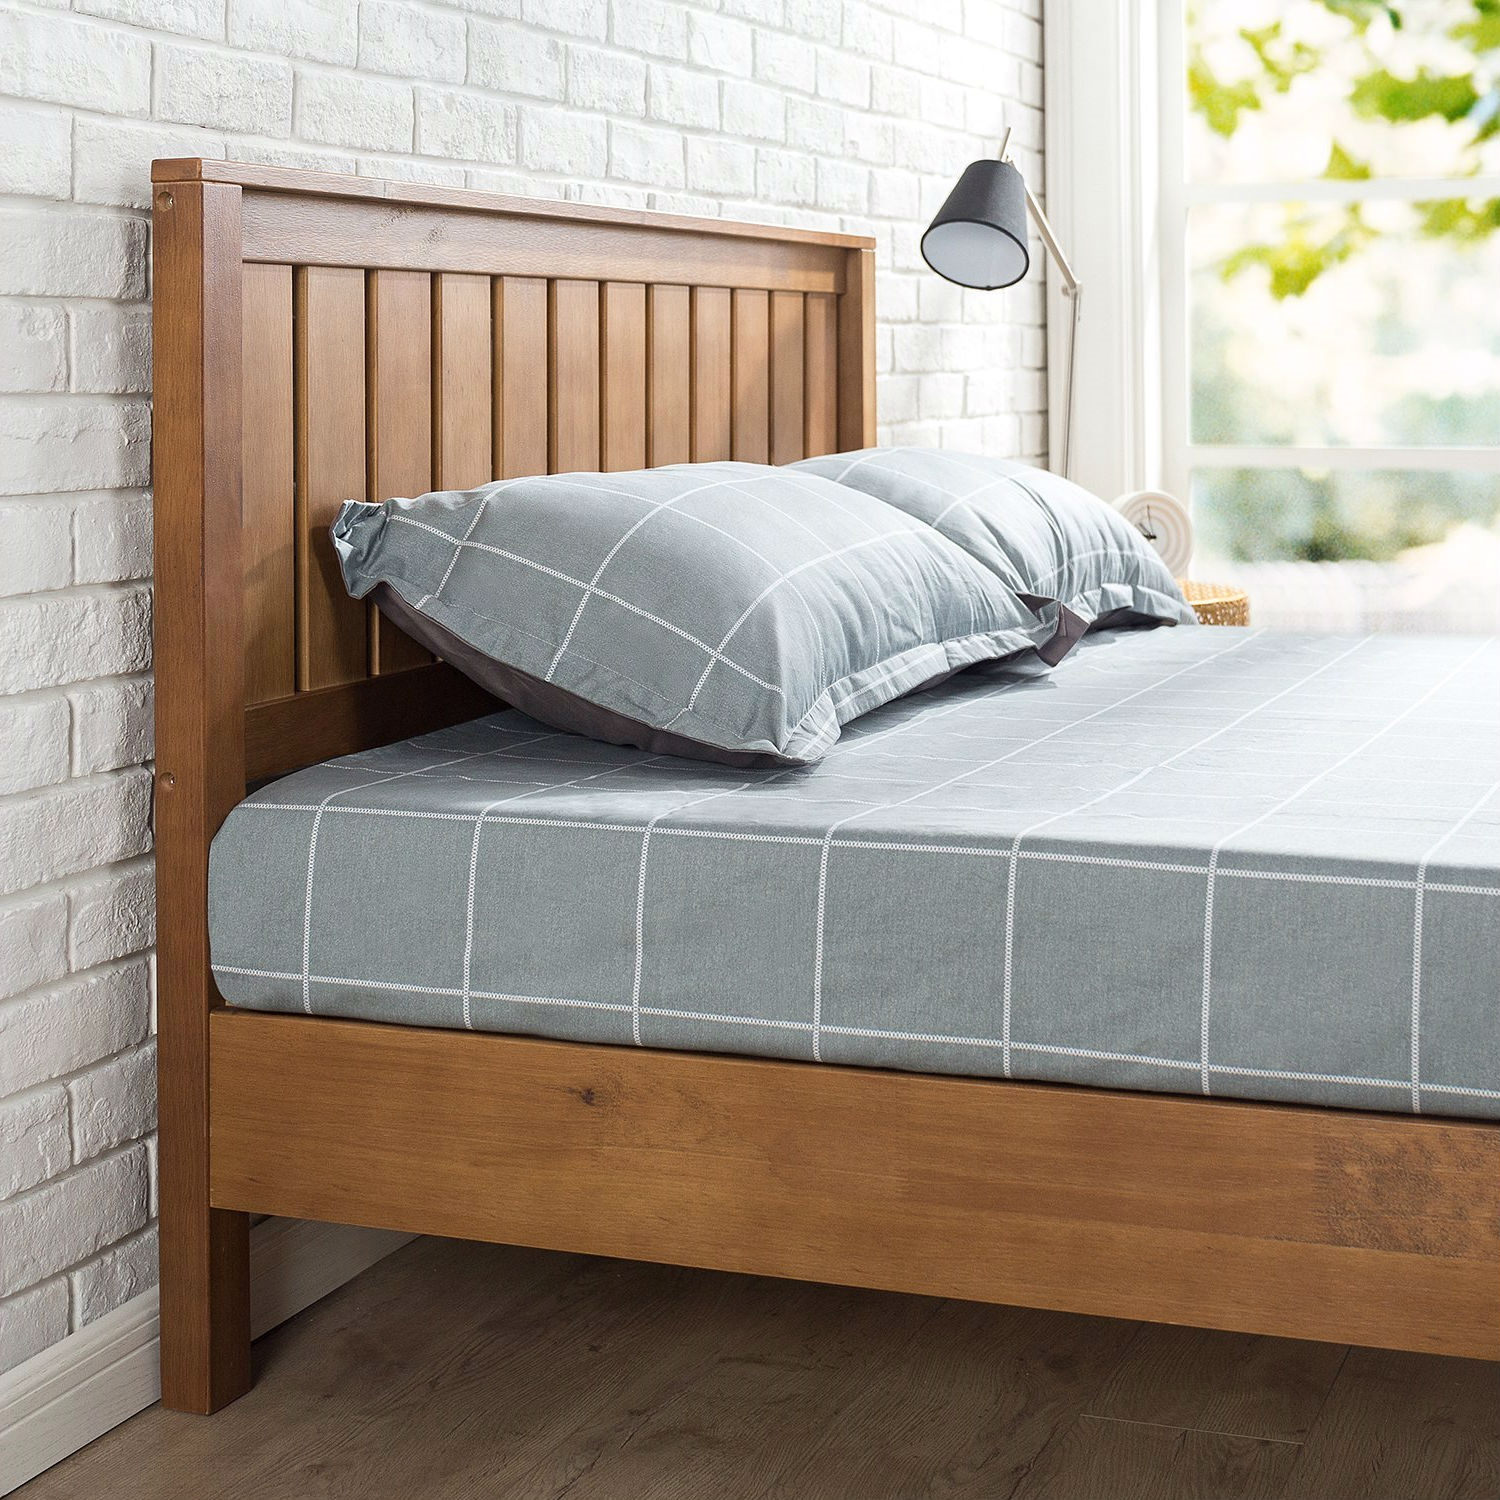 Full Size Solid Wood Platform Bed Frame With Headboard In Medium Brown Finish Fastfurnishings Com